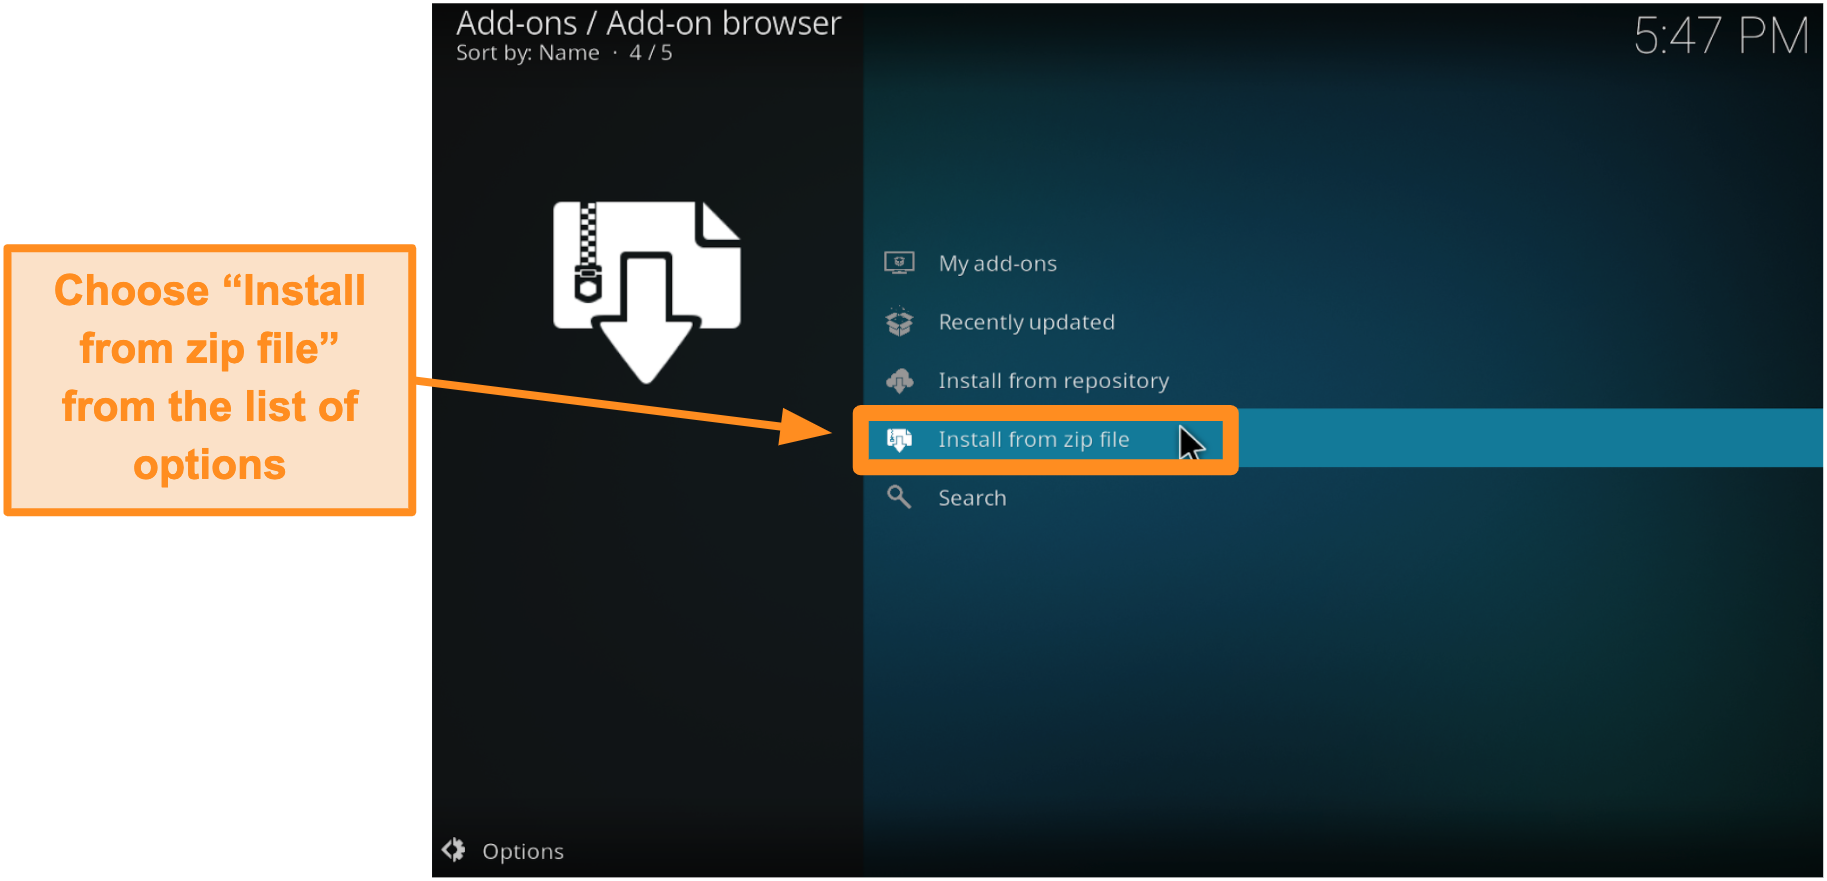 screenshot-how-to-install-third-party-kodi-addon-step-14-click-install-from-zip-file